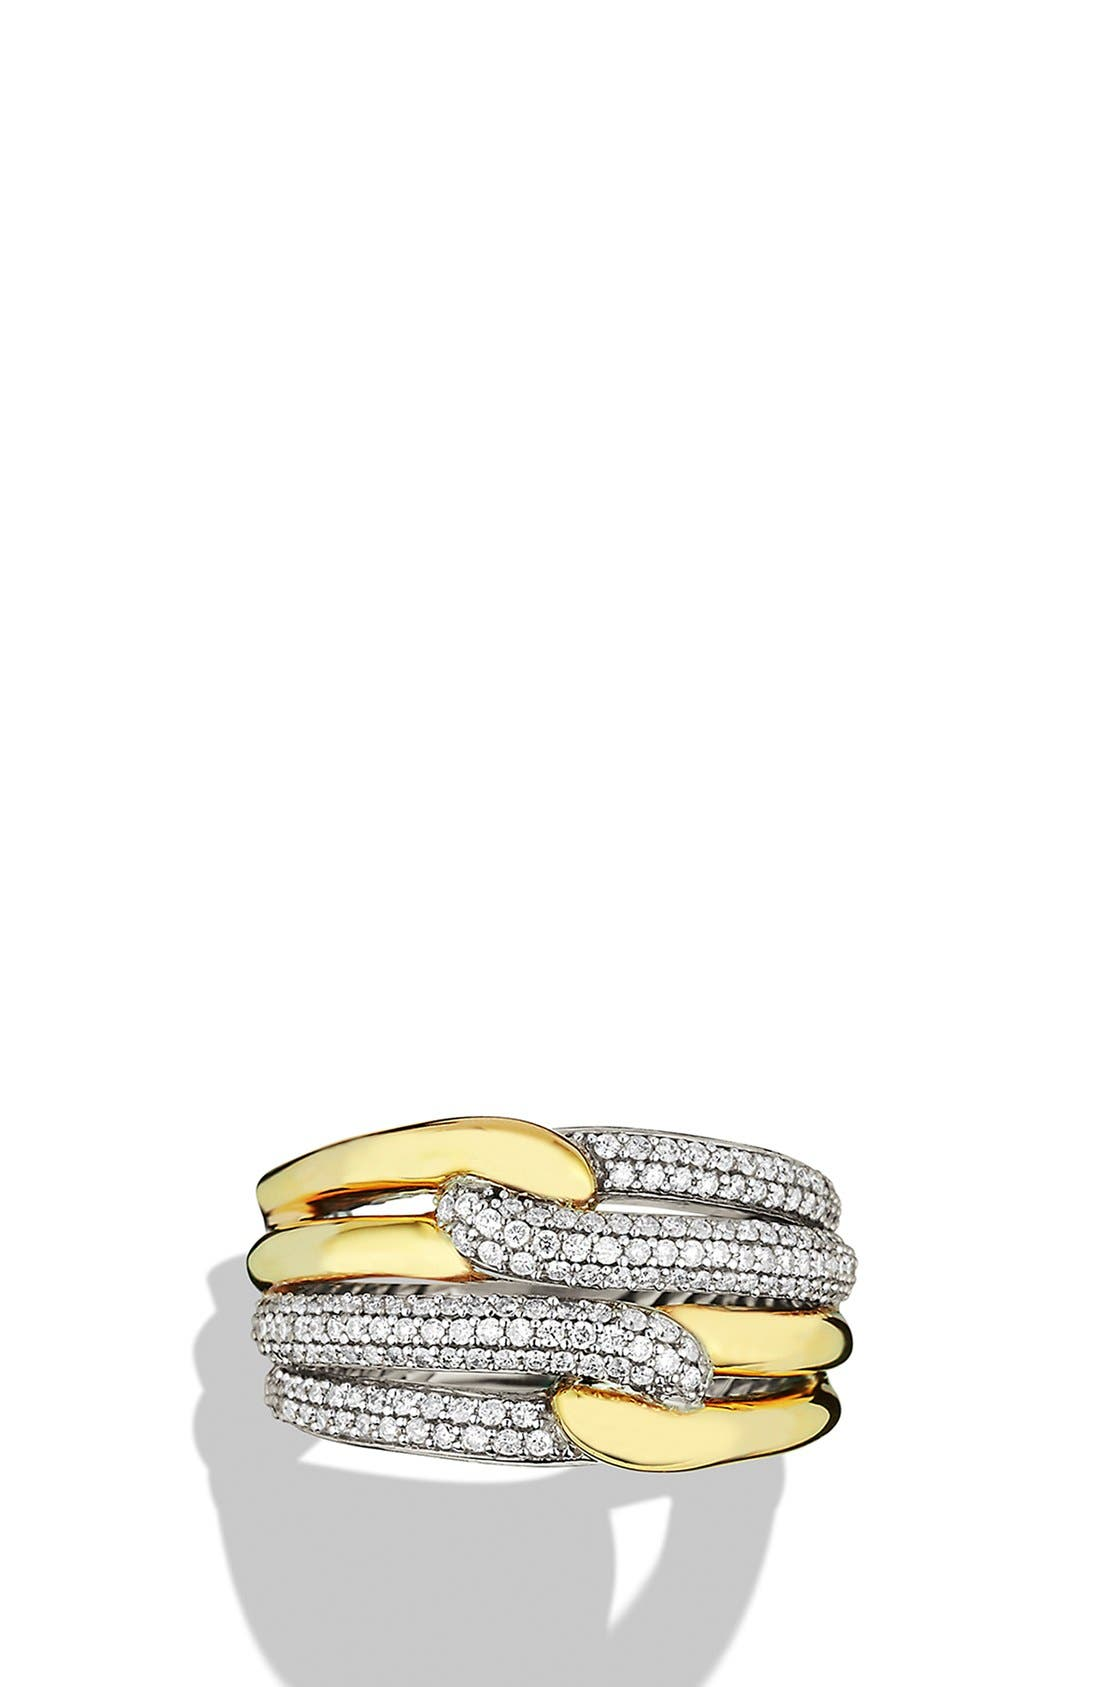 Alternate Image 3  - David Yurman 'Labyrinth' Double Loop Ring with Diamonds and Gold